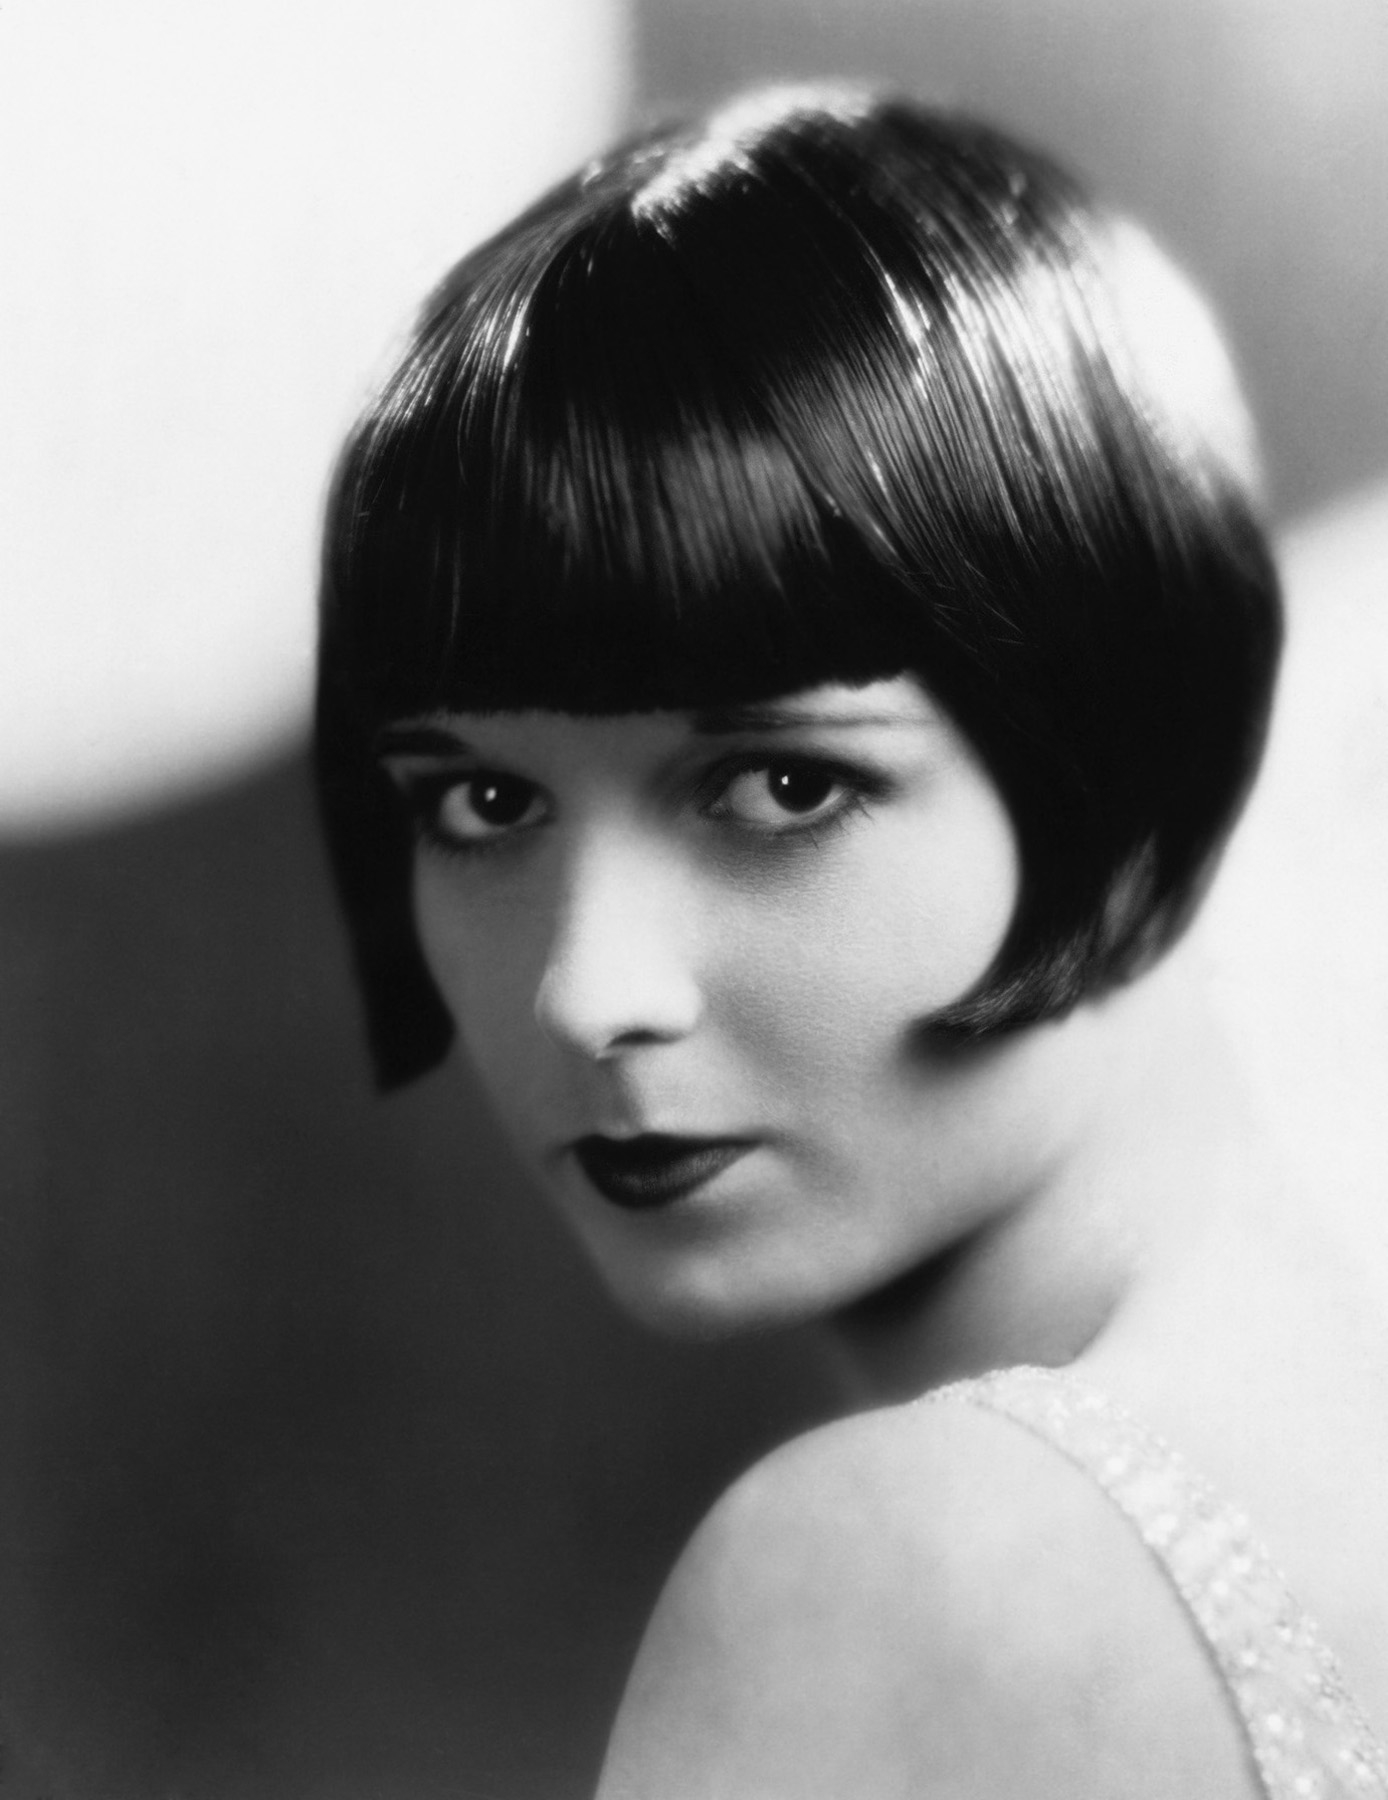 """zedisred: THE ORIGINAL """"IT"""" GIRL OF THE 1920s 